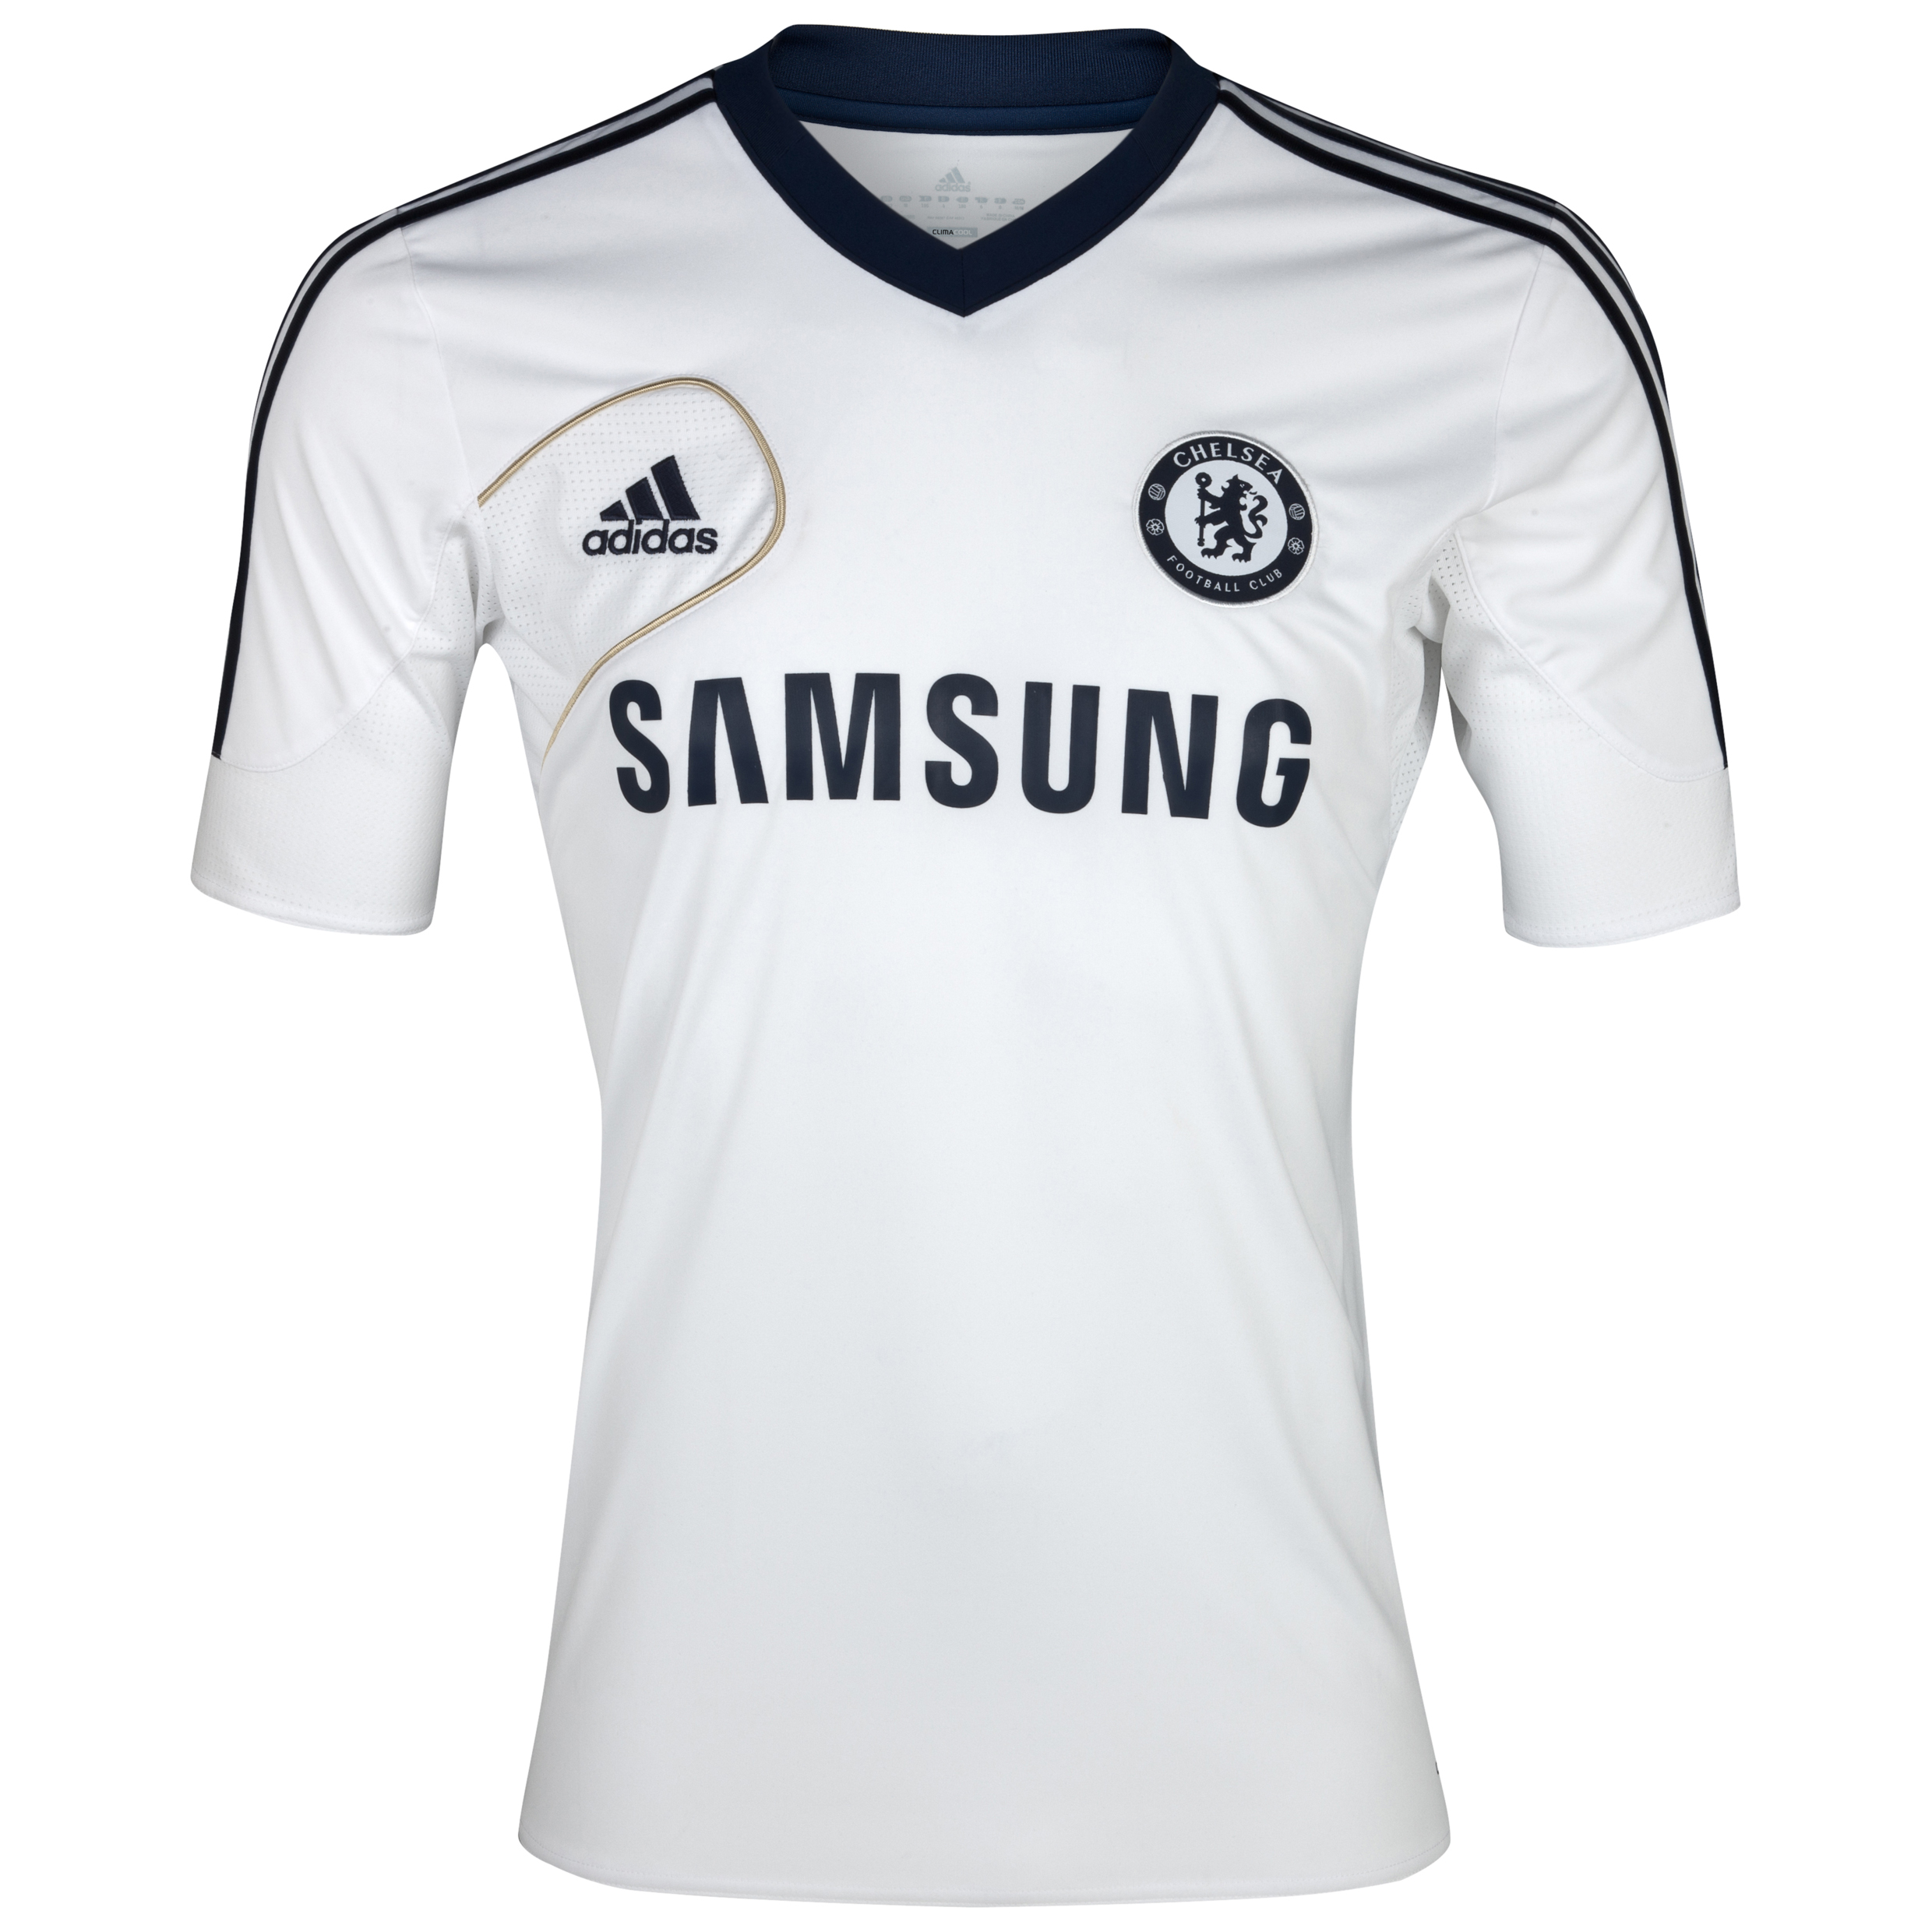 adidas Chelsea Training Jersey - White/Collegiate Navy/Light Football Gold - Kids